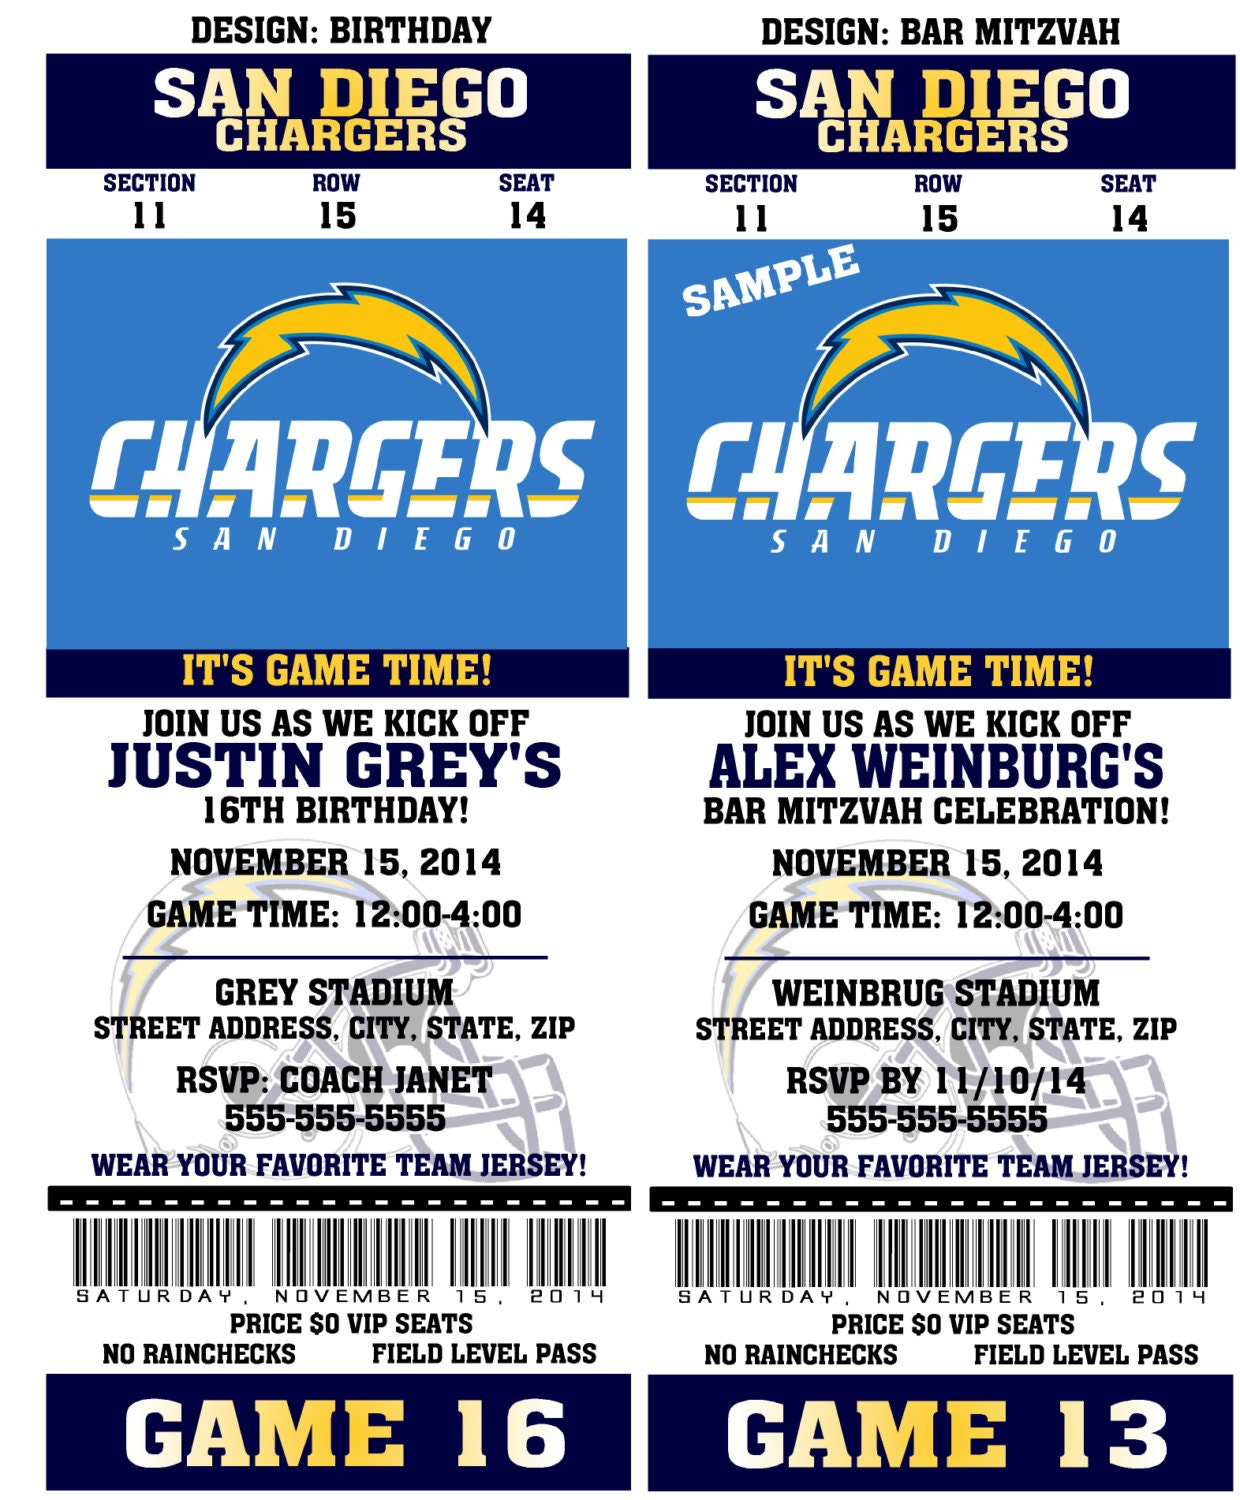 San Diego Chargers Happy Birthday Pictures: Printable Birthday Party Invitation Card San Diego Chargers